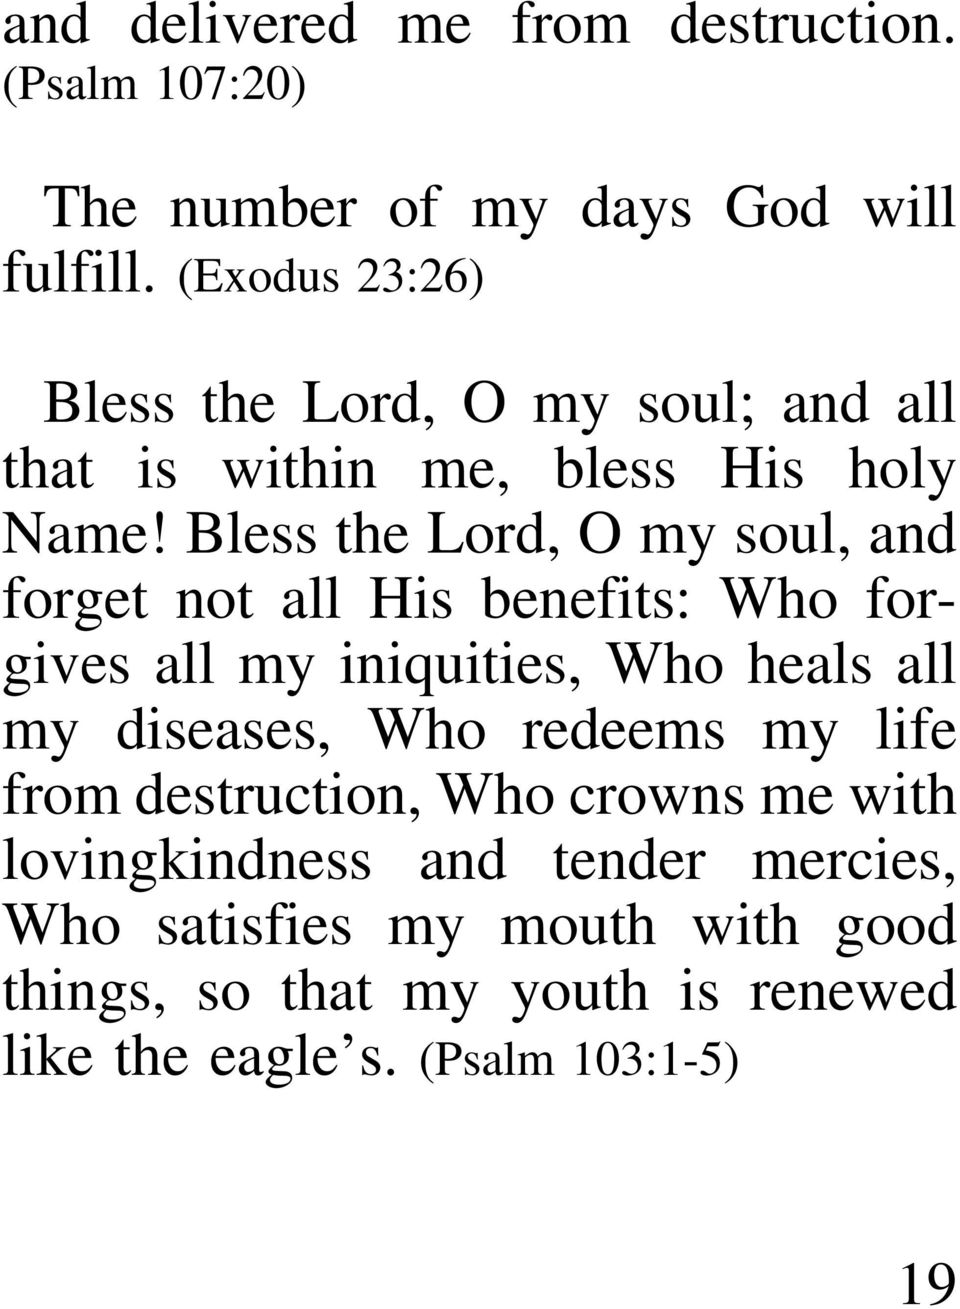 Bless the Lord, O my soul, and forget not all His benefits: Who forgives all my iniquities, Who heals all my diseases, Who